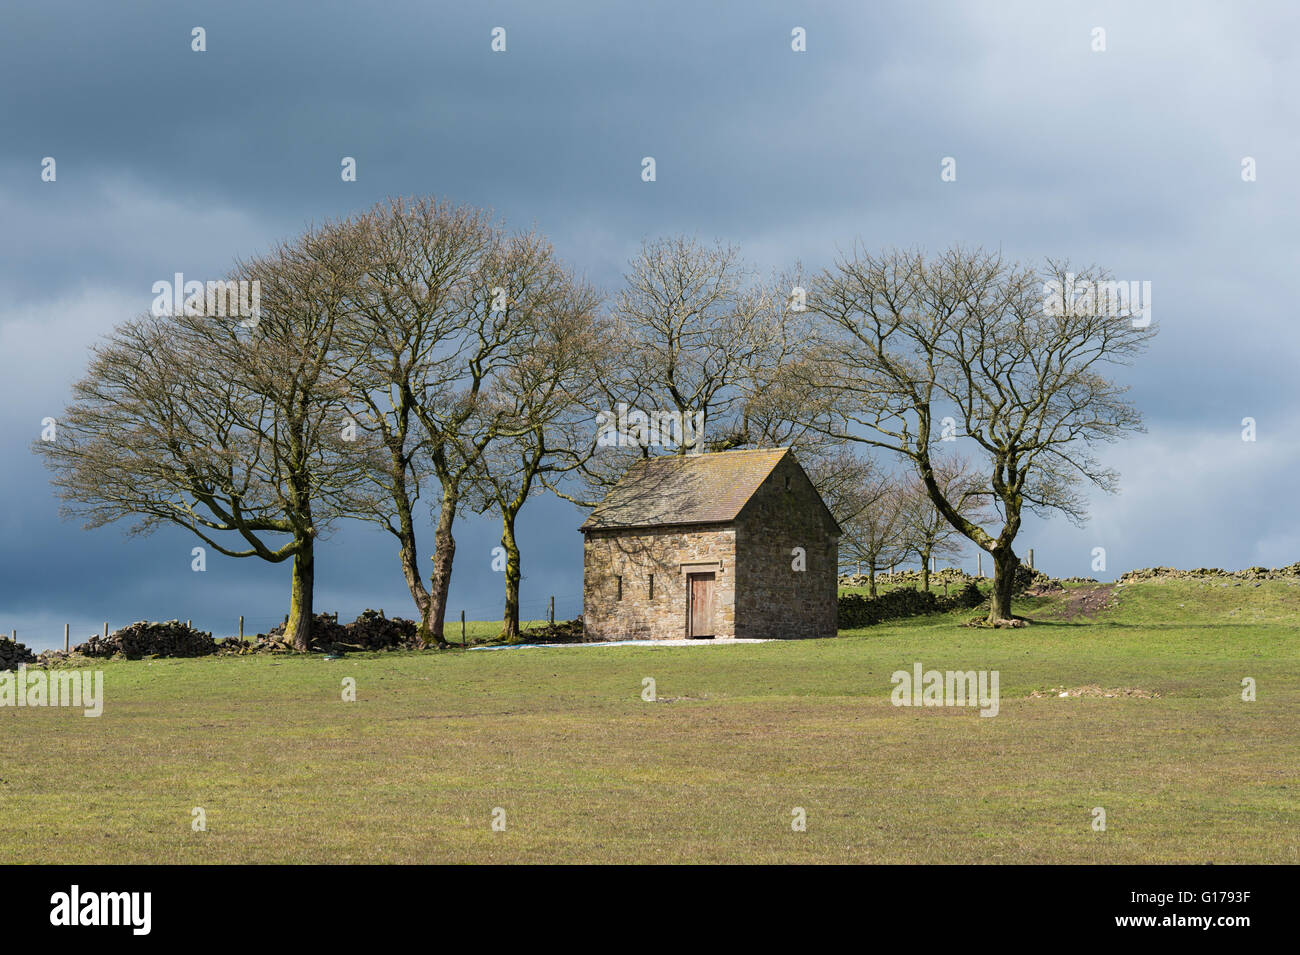 A stone barn, Peak District, Staffordshire Moorlands - Stock Image